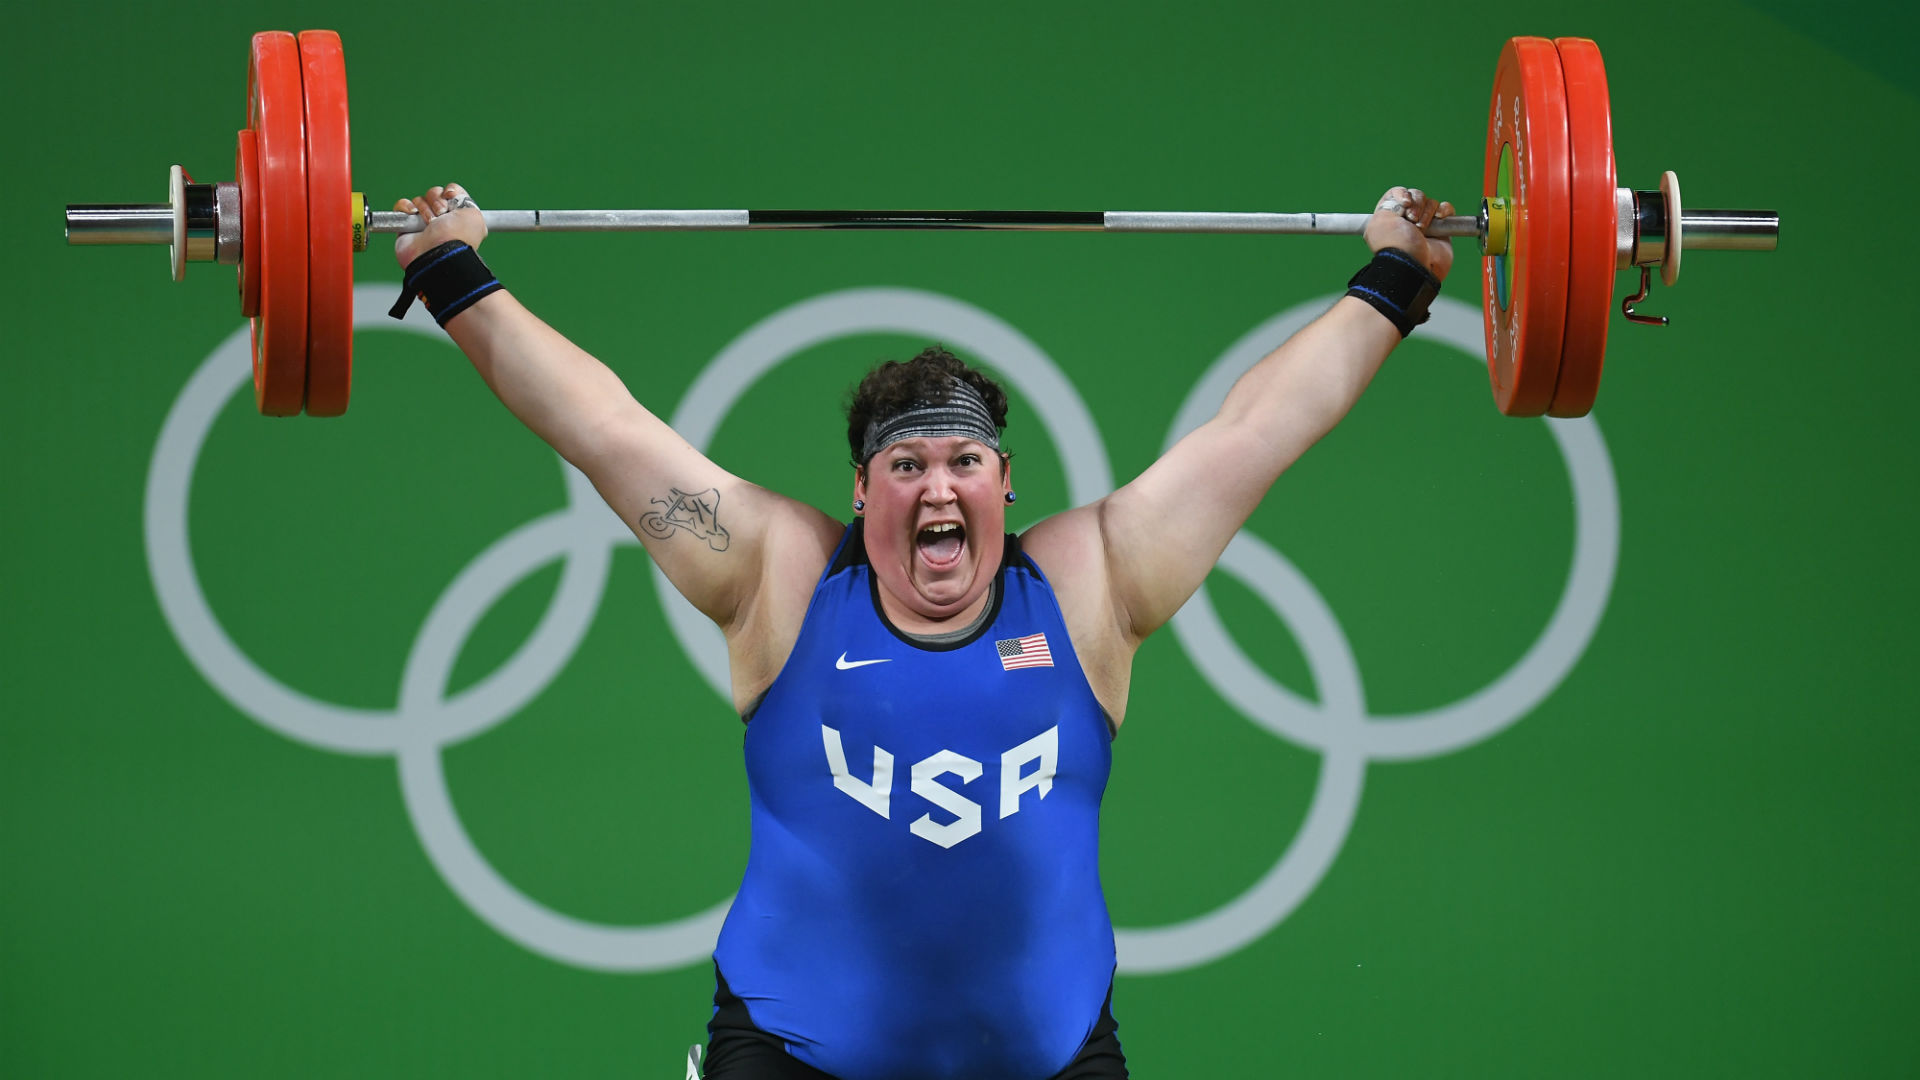 Other | Sarah Robles wins medal year after doping ban ...